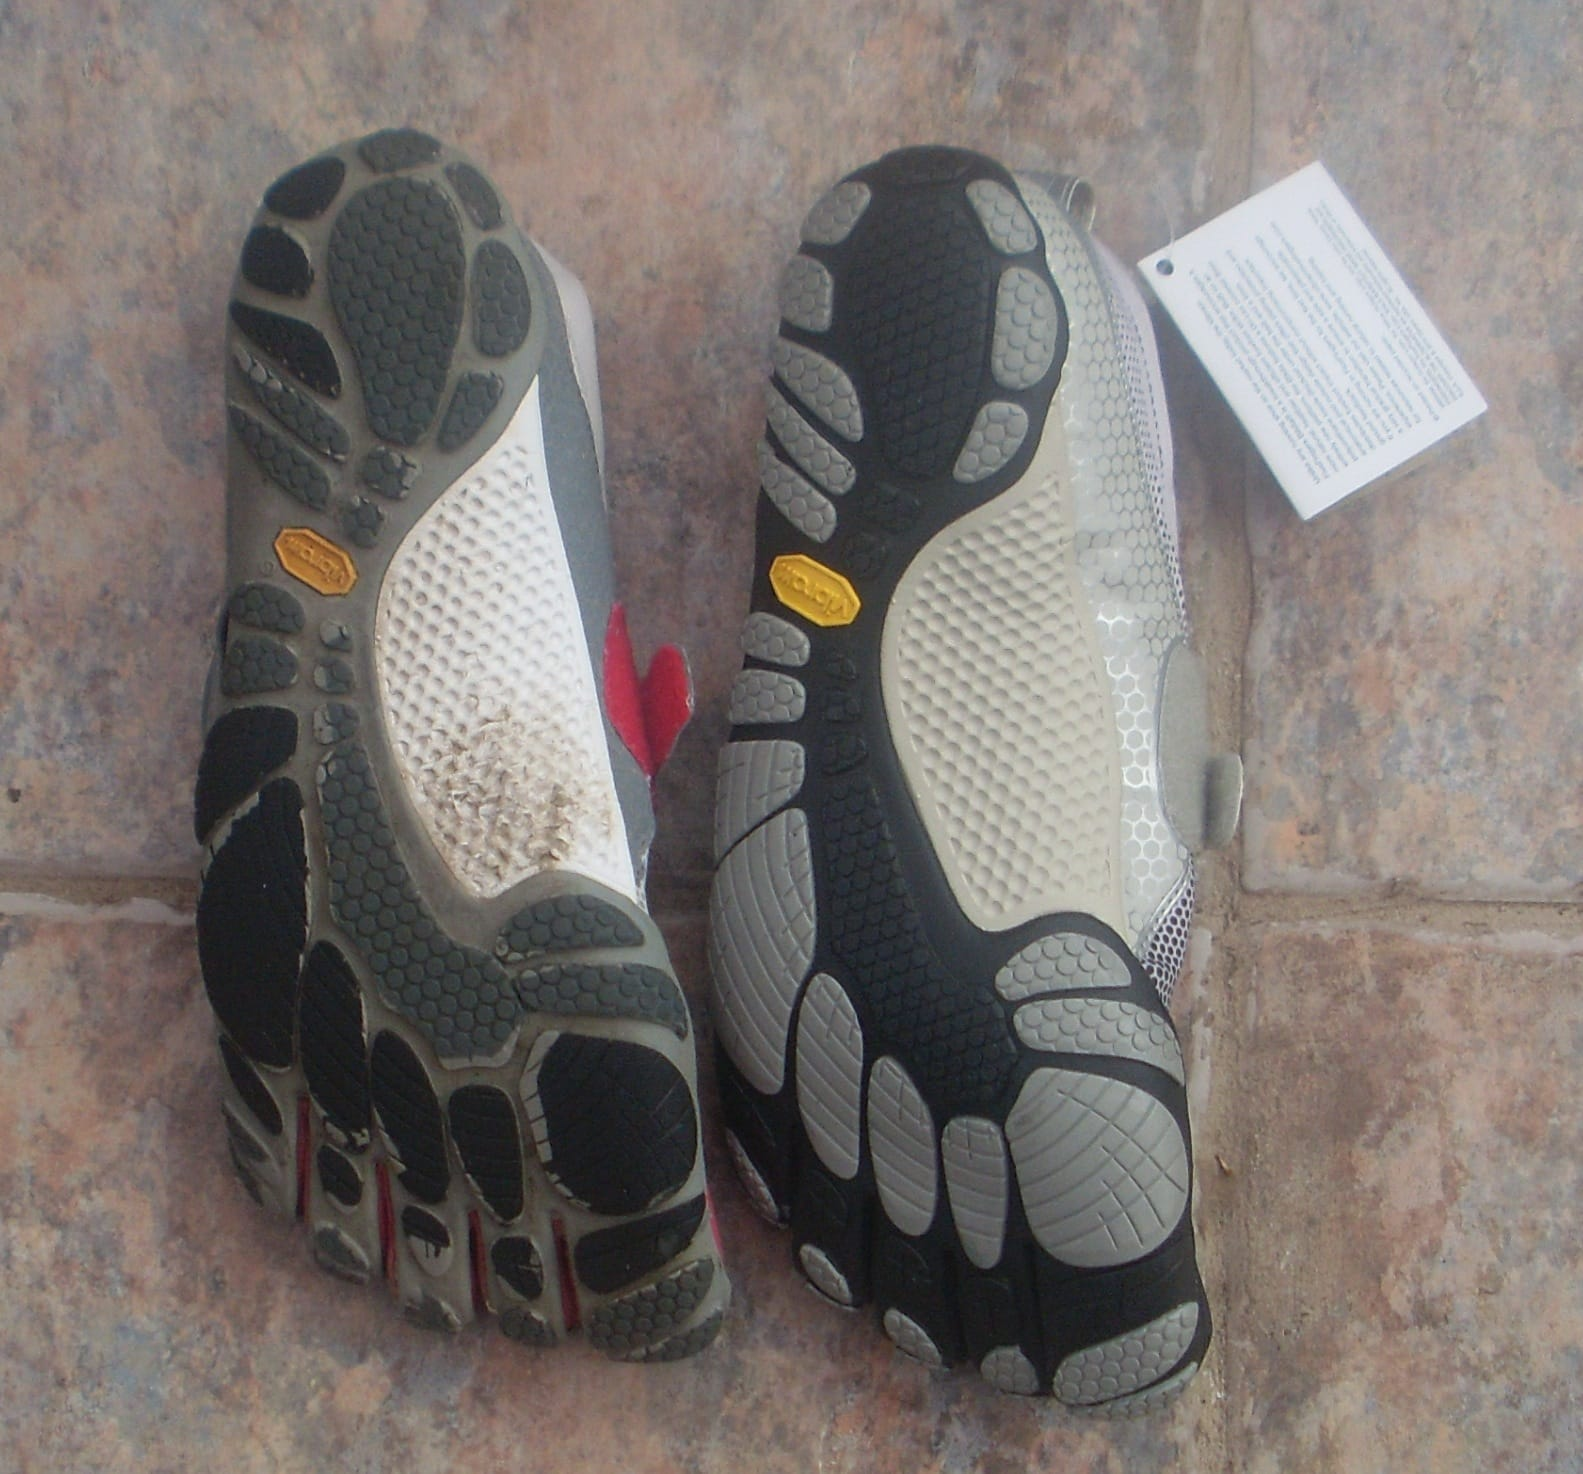 The Ugly Sister: Vibram soles should never wear out so soon. Nor should the TC1 rubber change colour